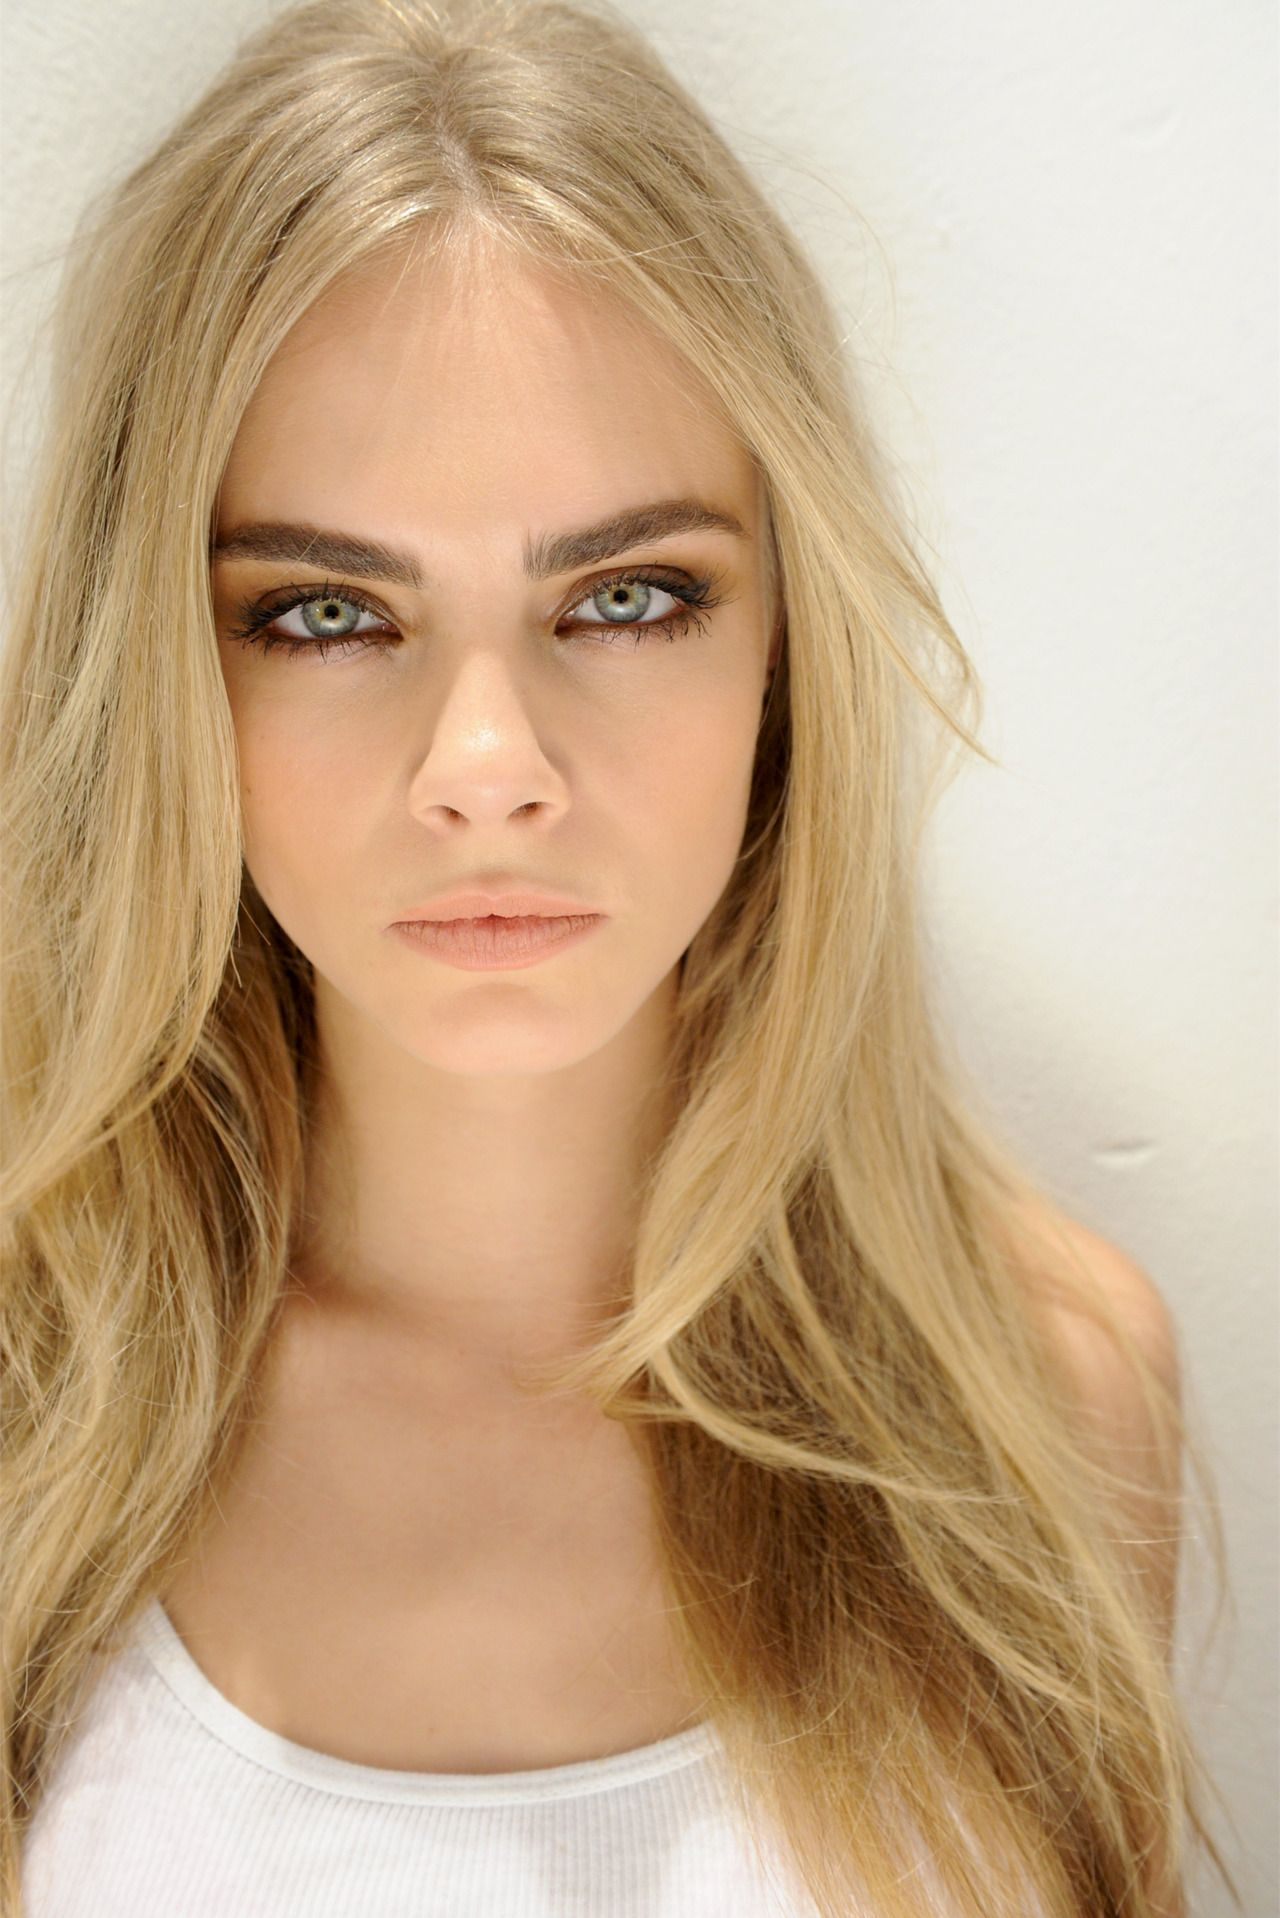 Ash blonde is the perfect eyebrow color for light to